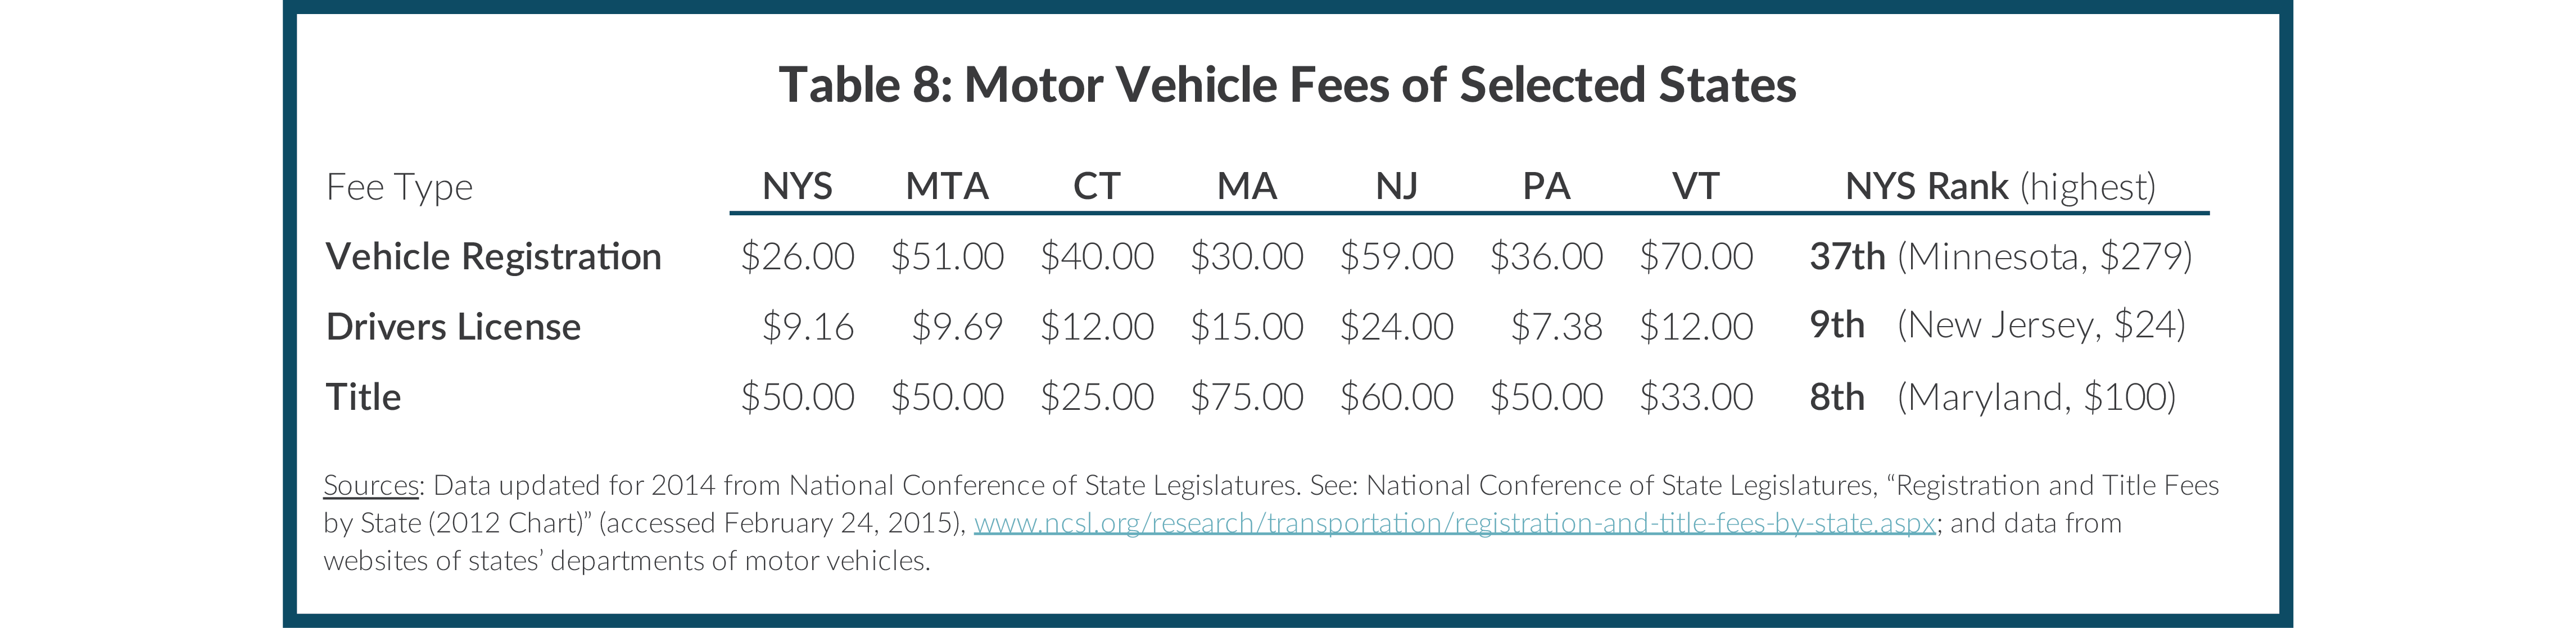 Table 8: Motor Vehicle Fees of Selected States